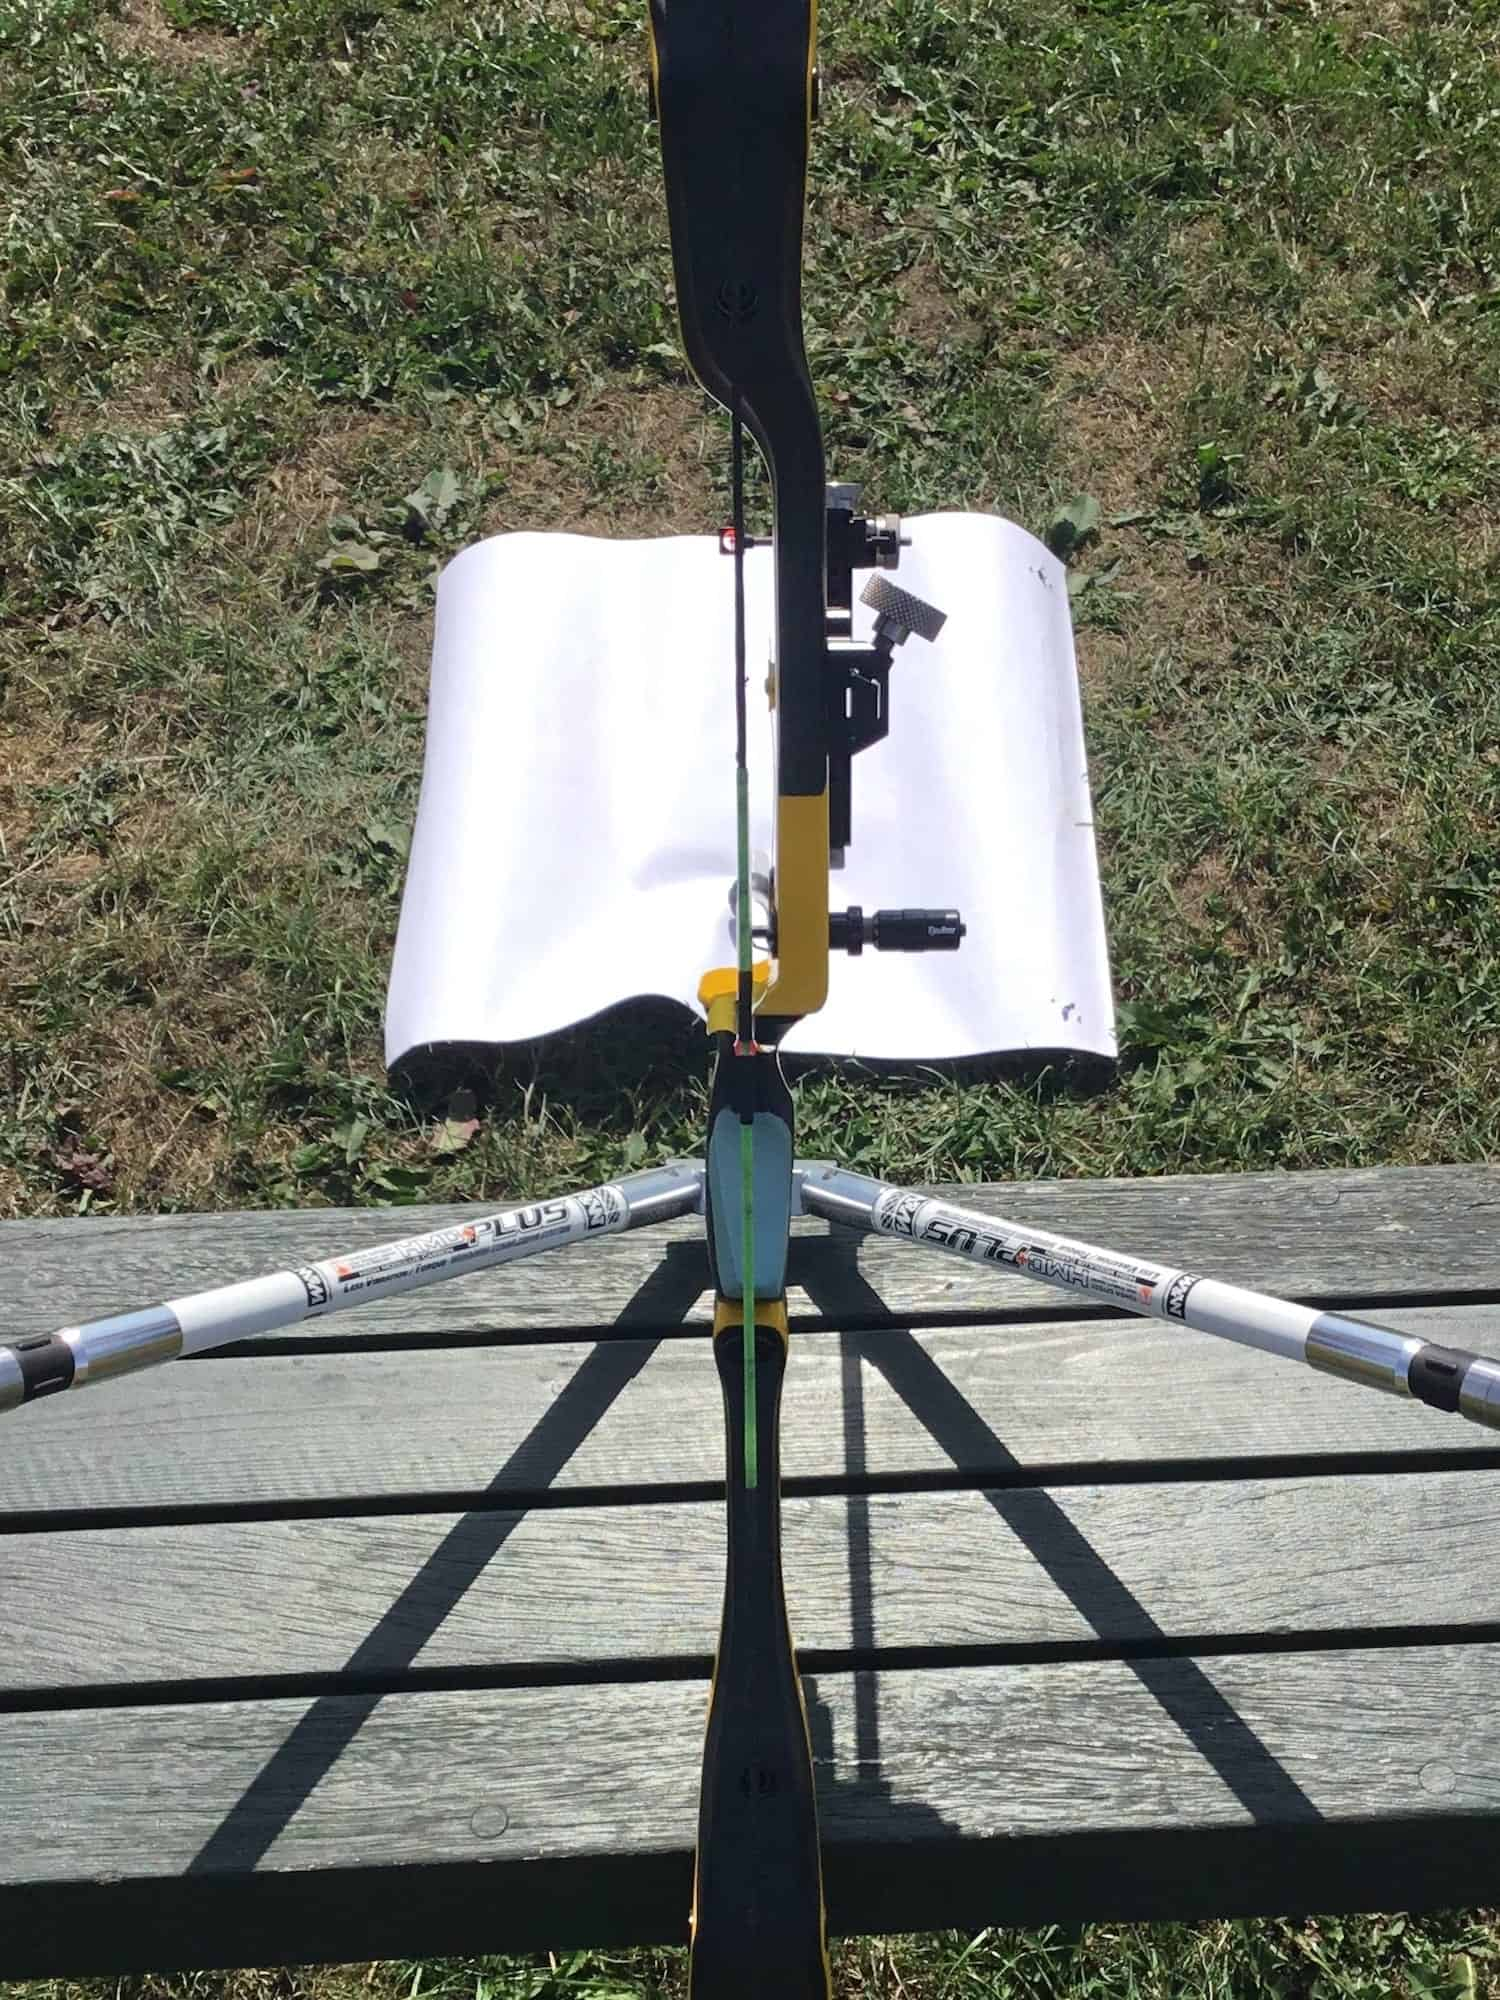 Sight alignment for a recurve bow